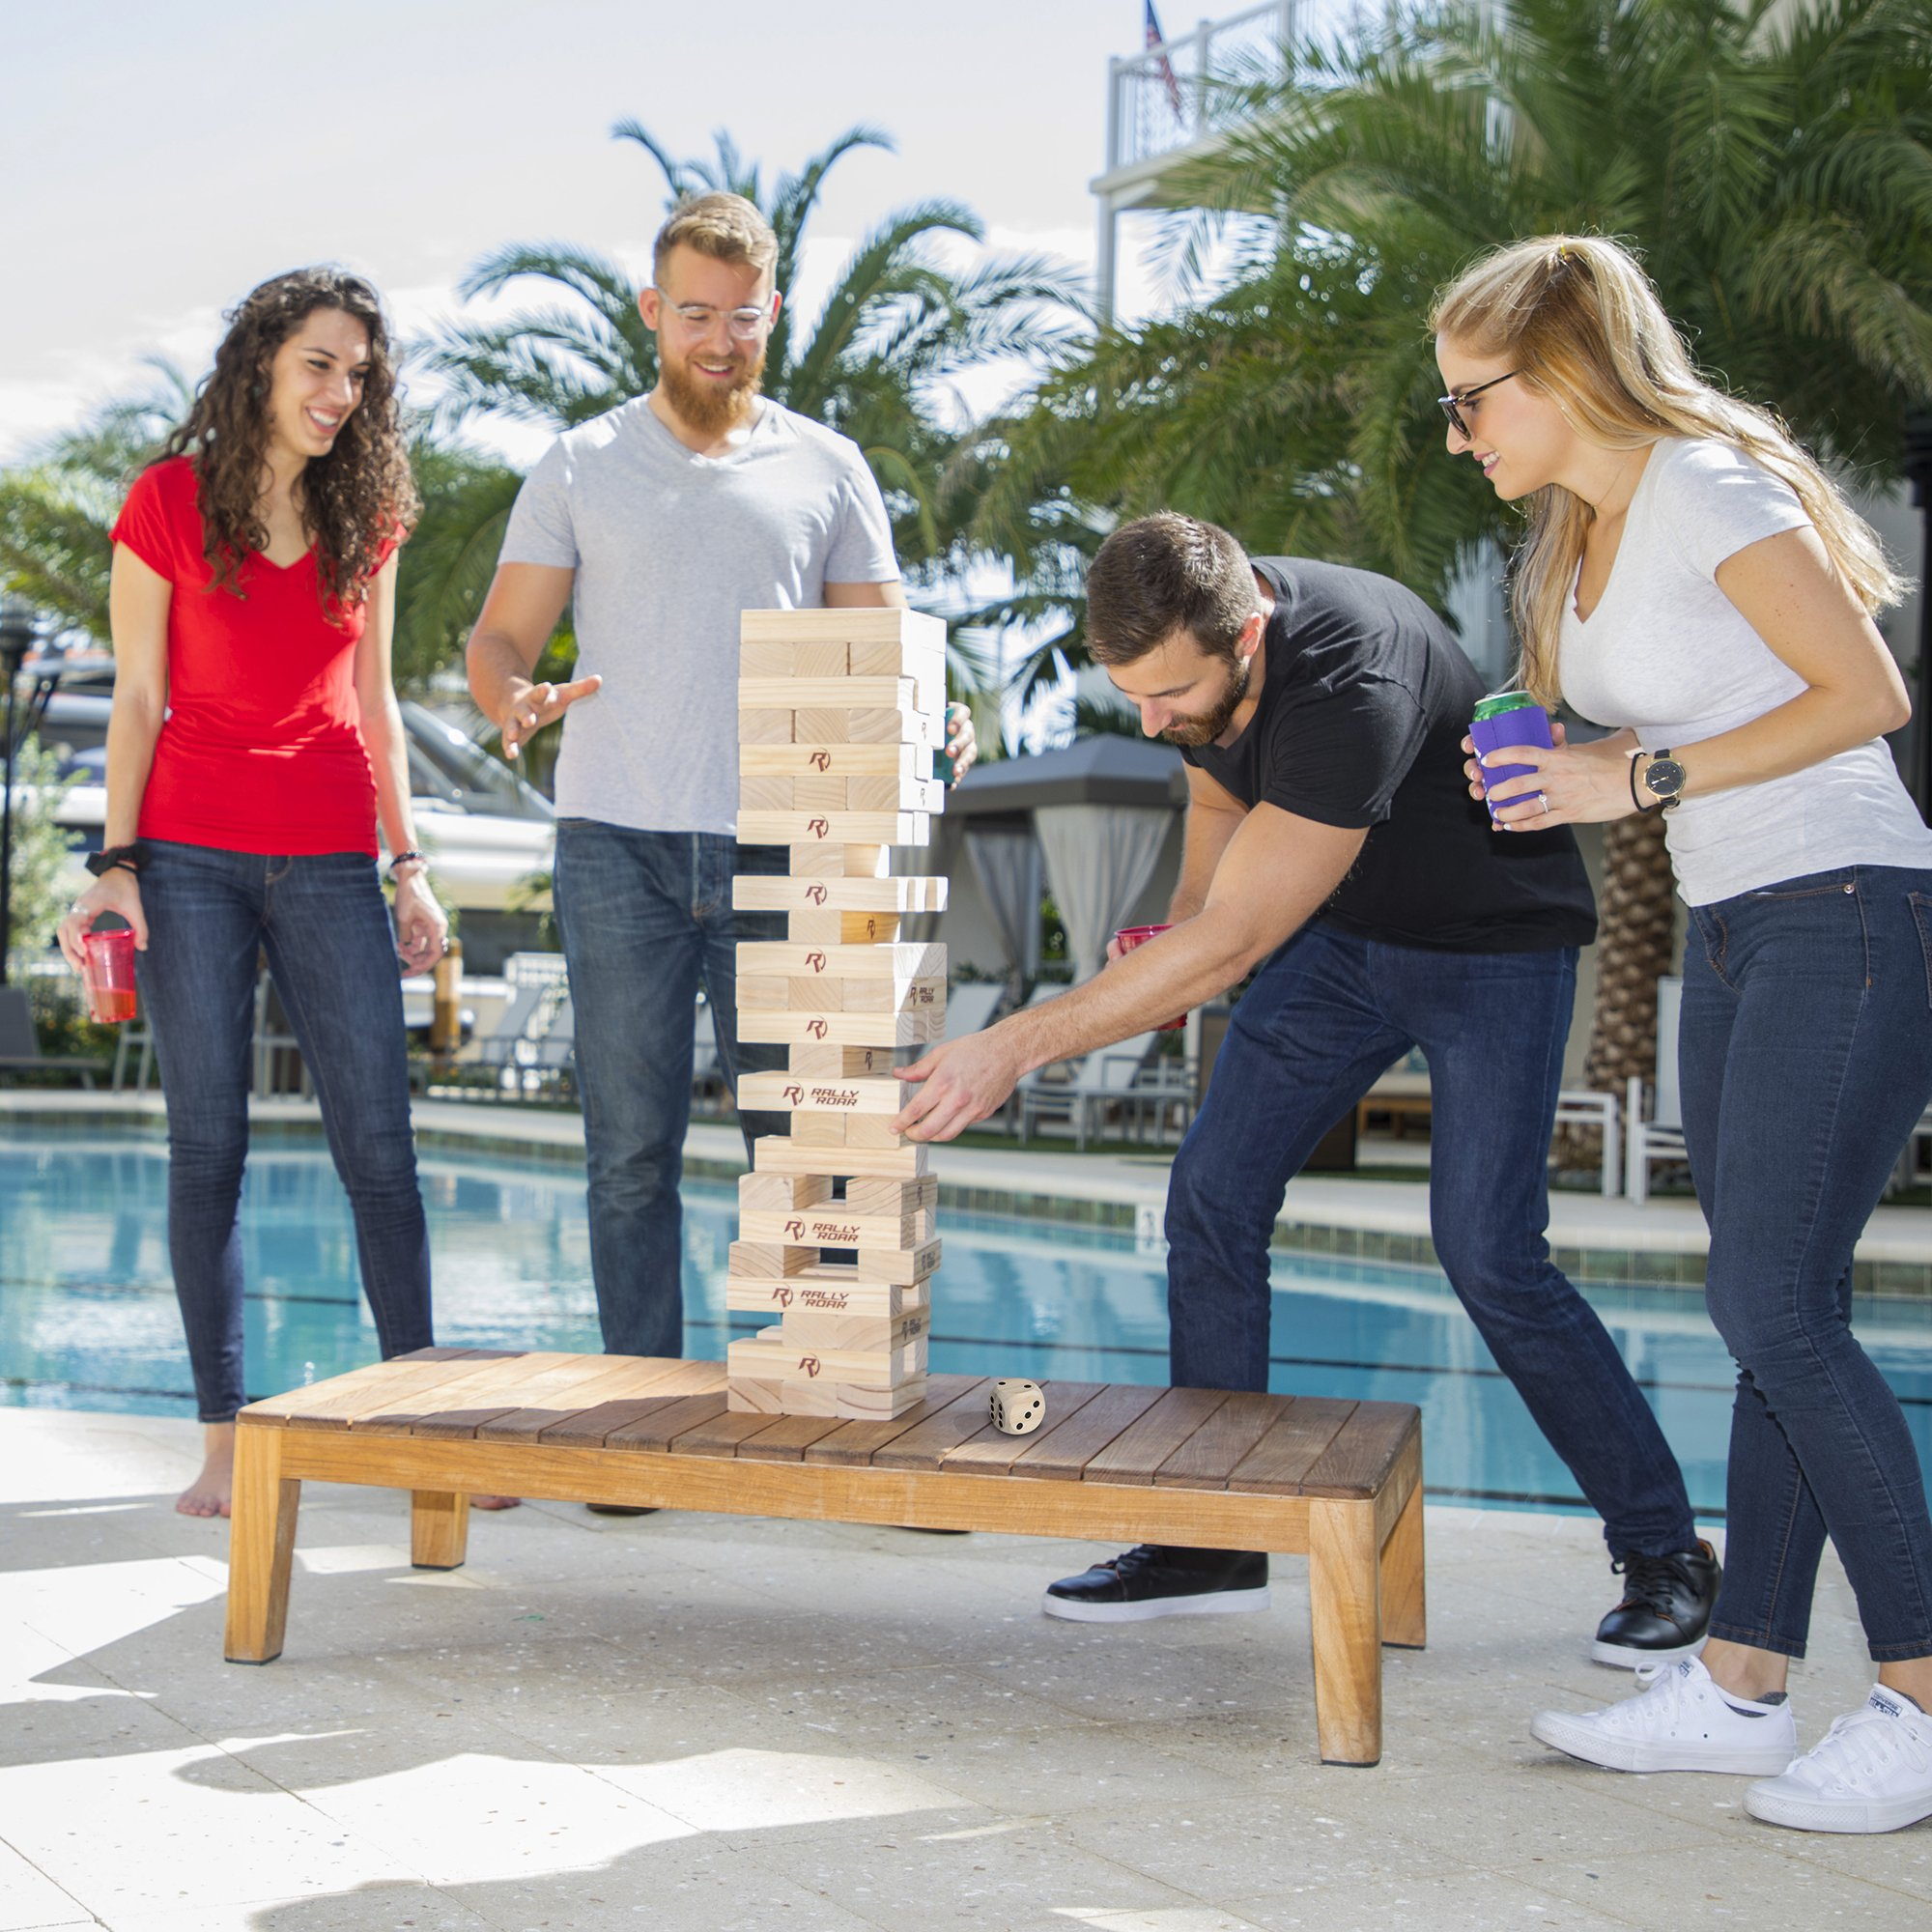 Rally and Roar Toppling Tower Giant Tumbling Timbers Game 2.5 feet Tall (Build to Over 5 feet)– Classic Wood Version - for Adults, Kids, Family – Stacking Blocks Set w/Canvas Bag by Rally and Roar (Image #5)